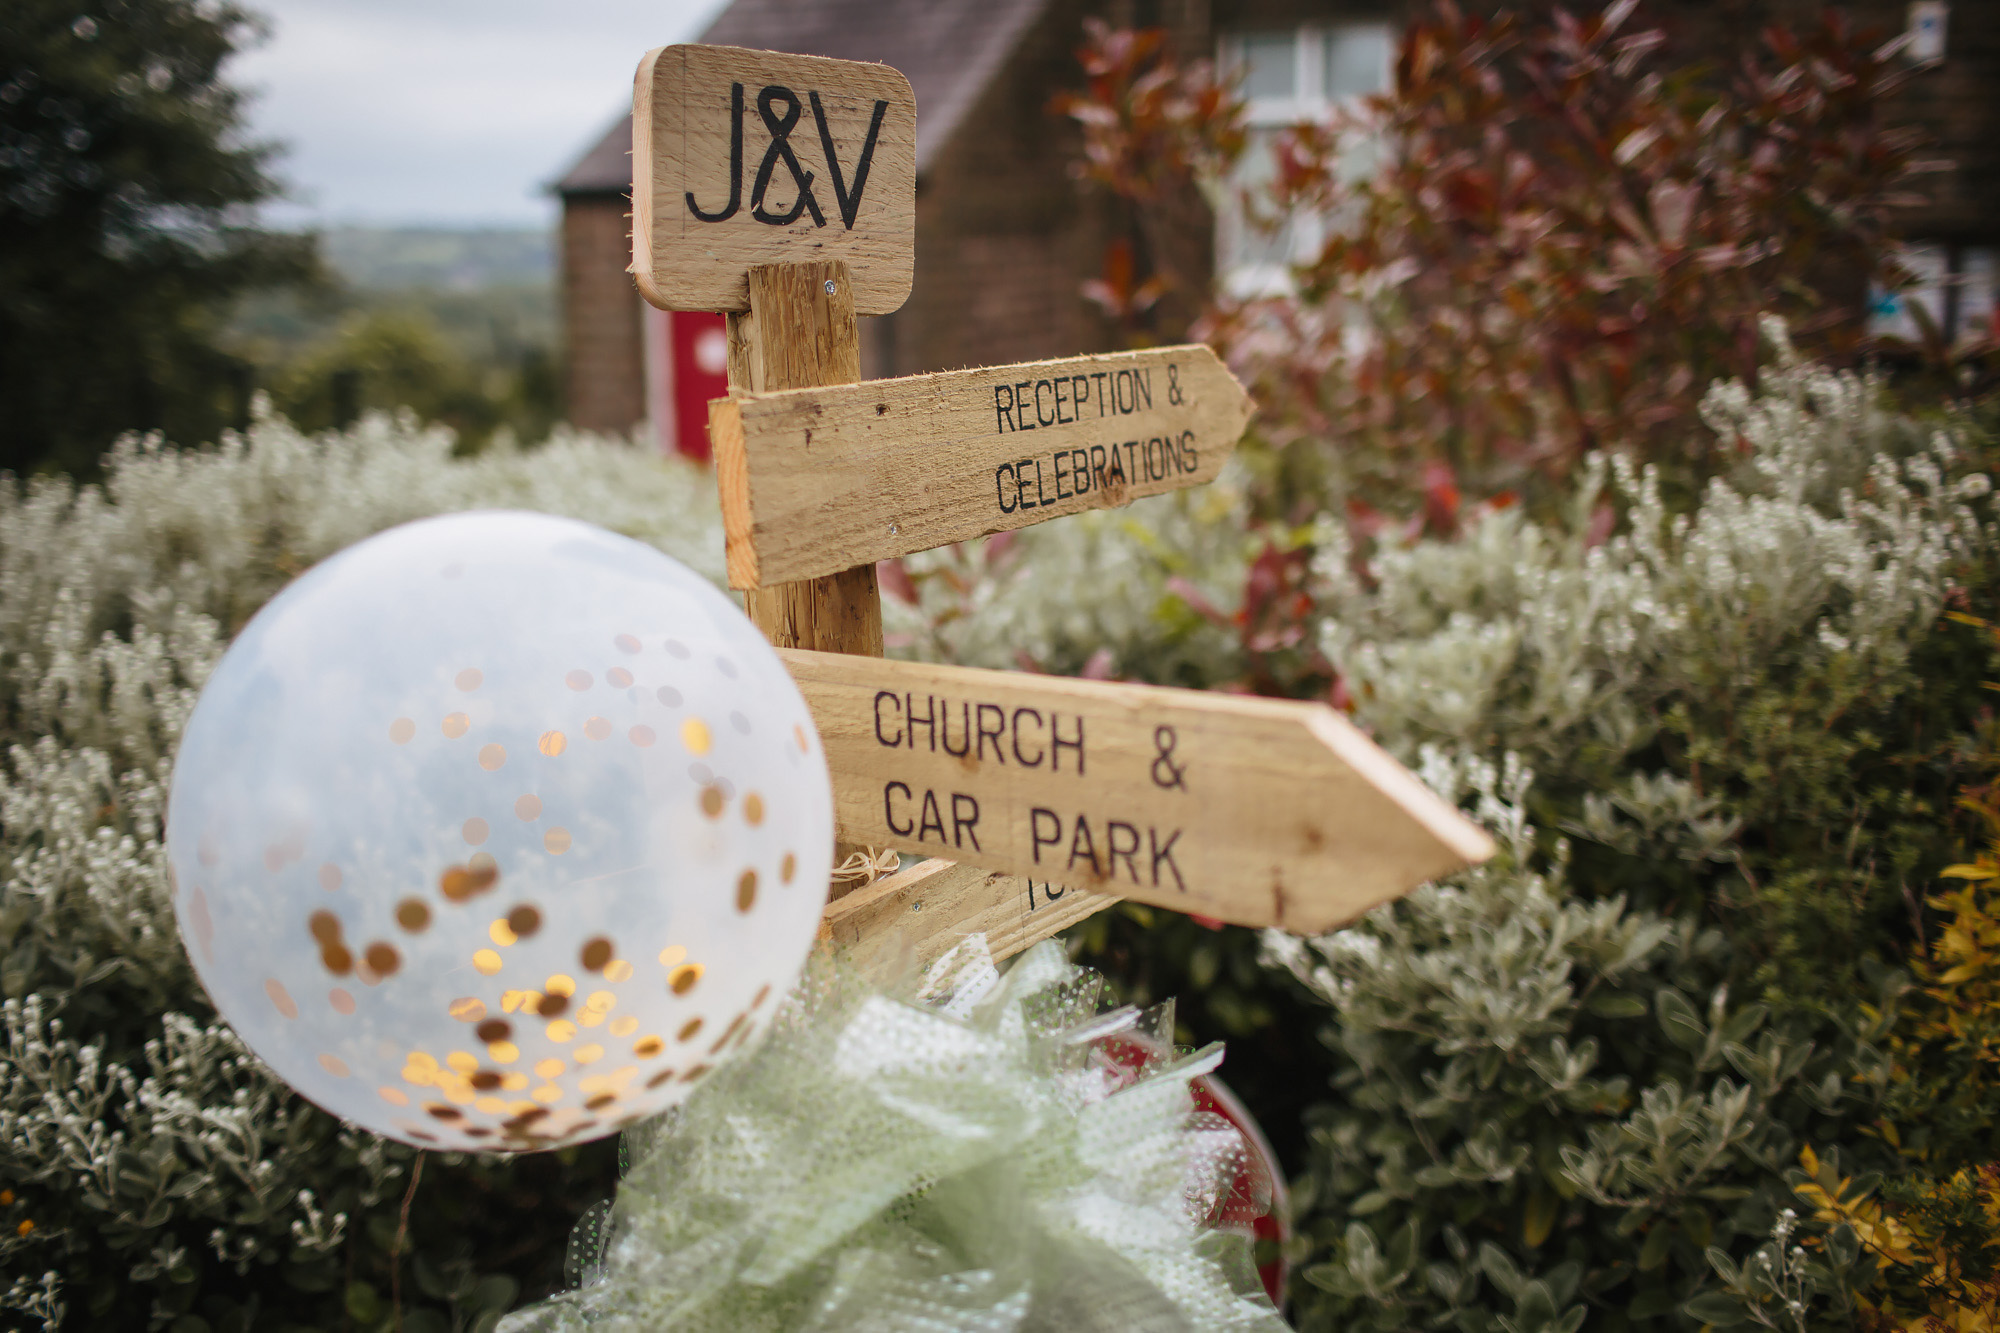 Wooden sign for a wedding pointing to the church